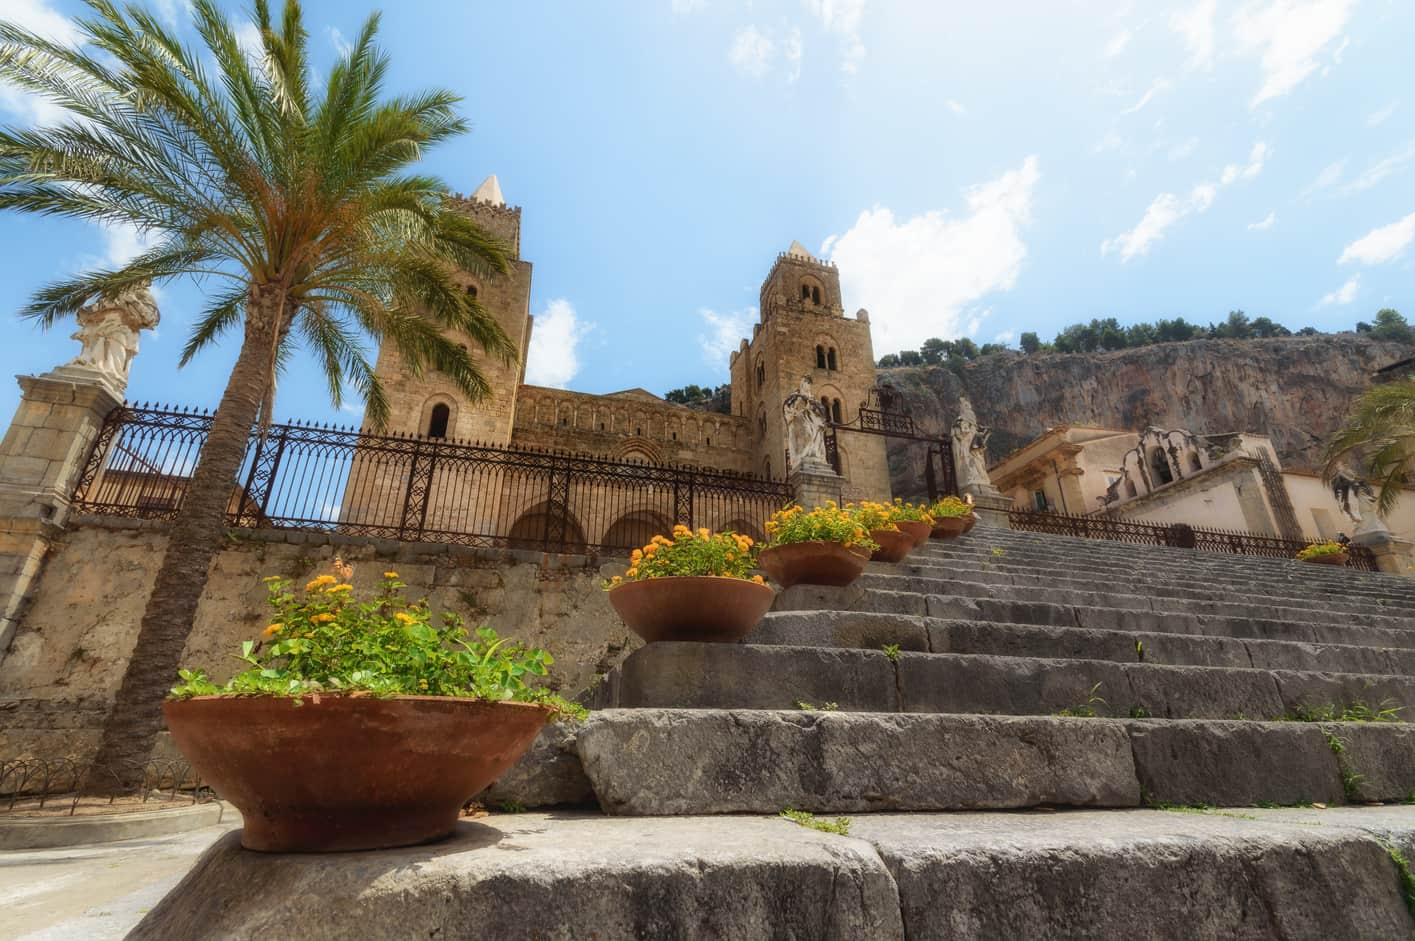 Duomo di Cefalú in sicily main attractions in cefalu in one day visit